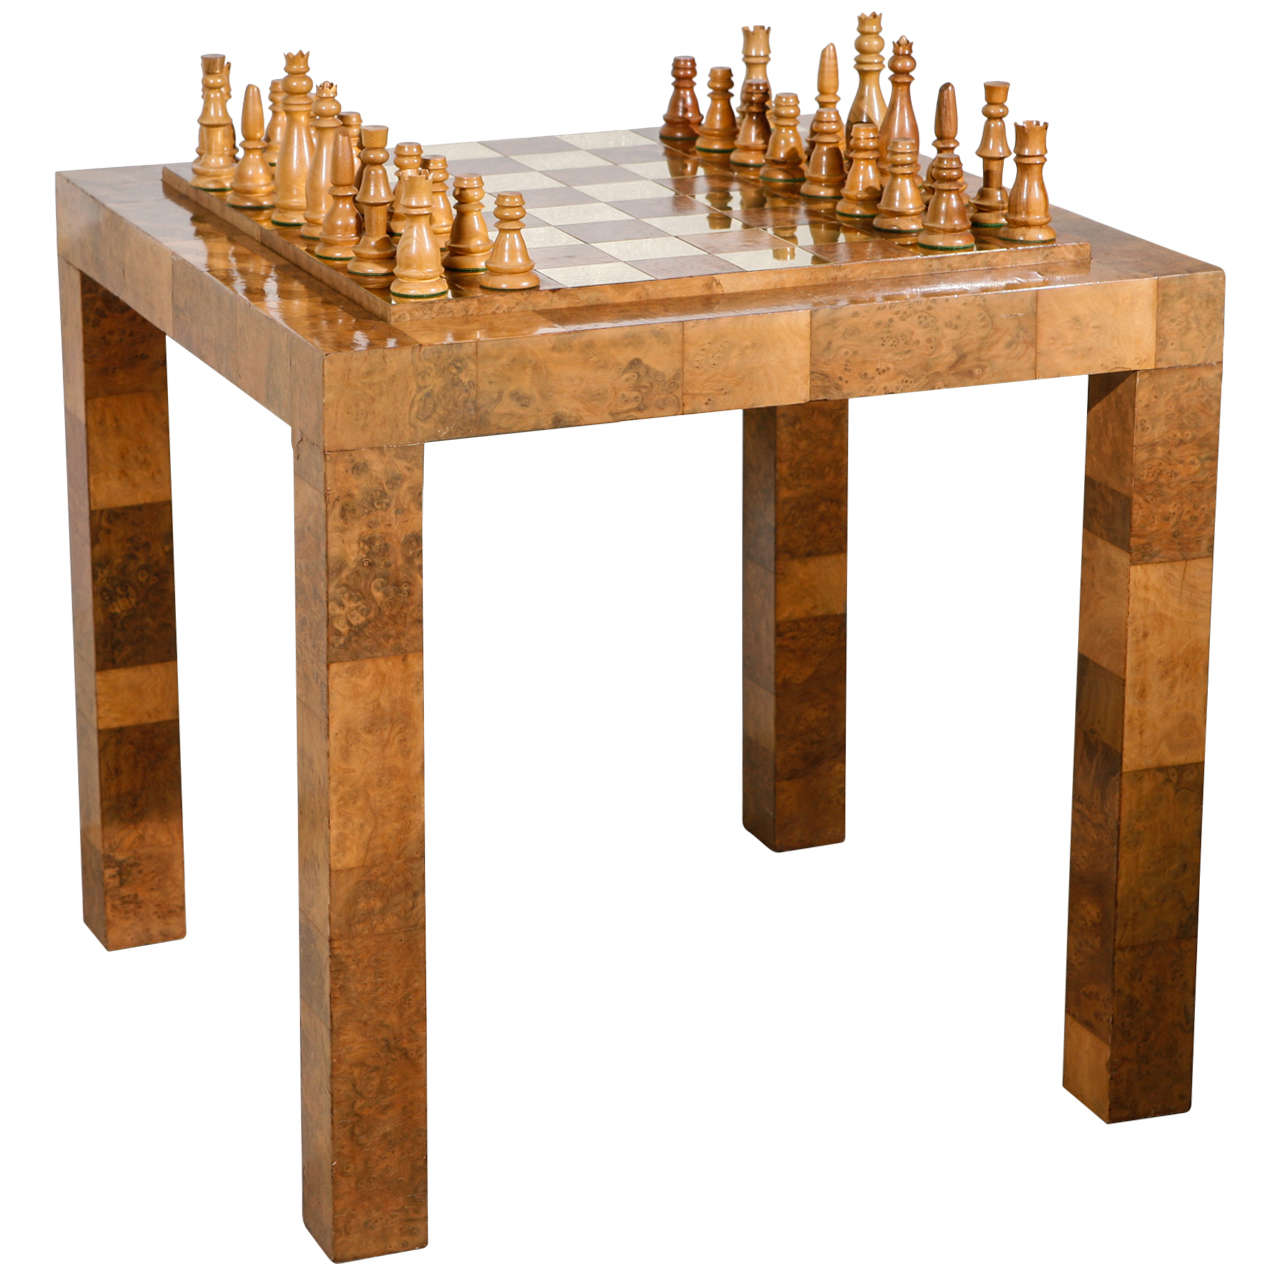 Paul Evans Patchwork Olive Burl and Brass Game Table and Chess Set